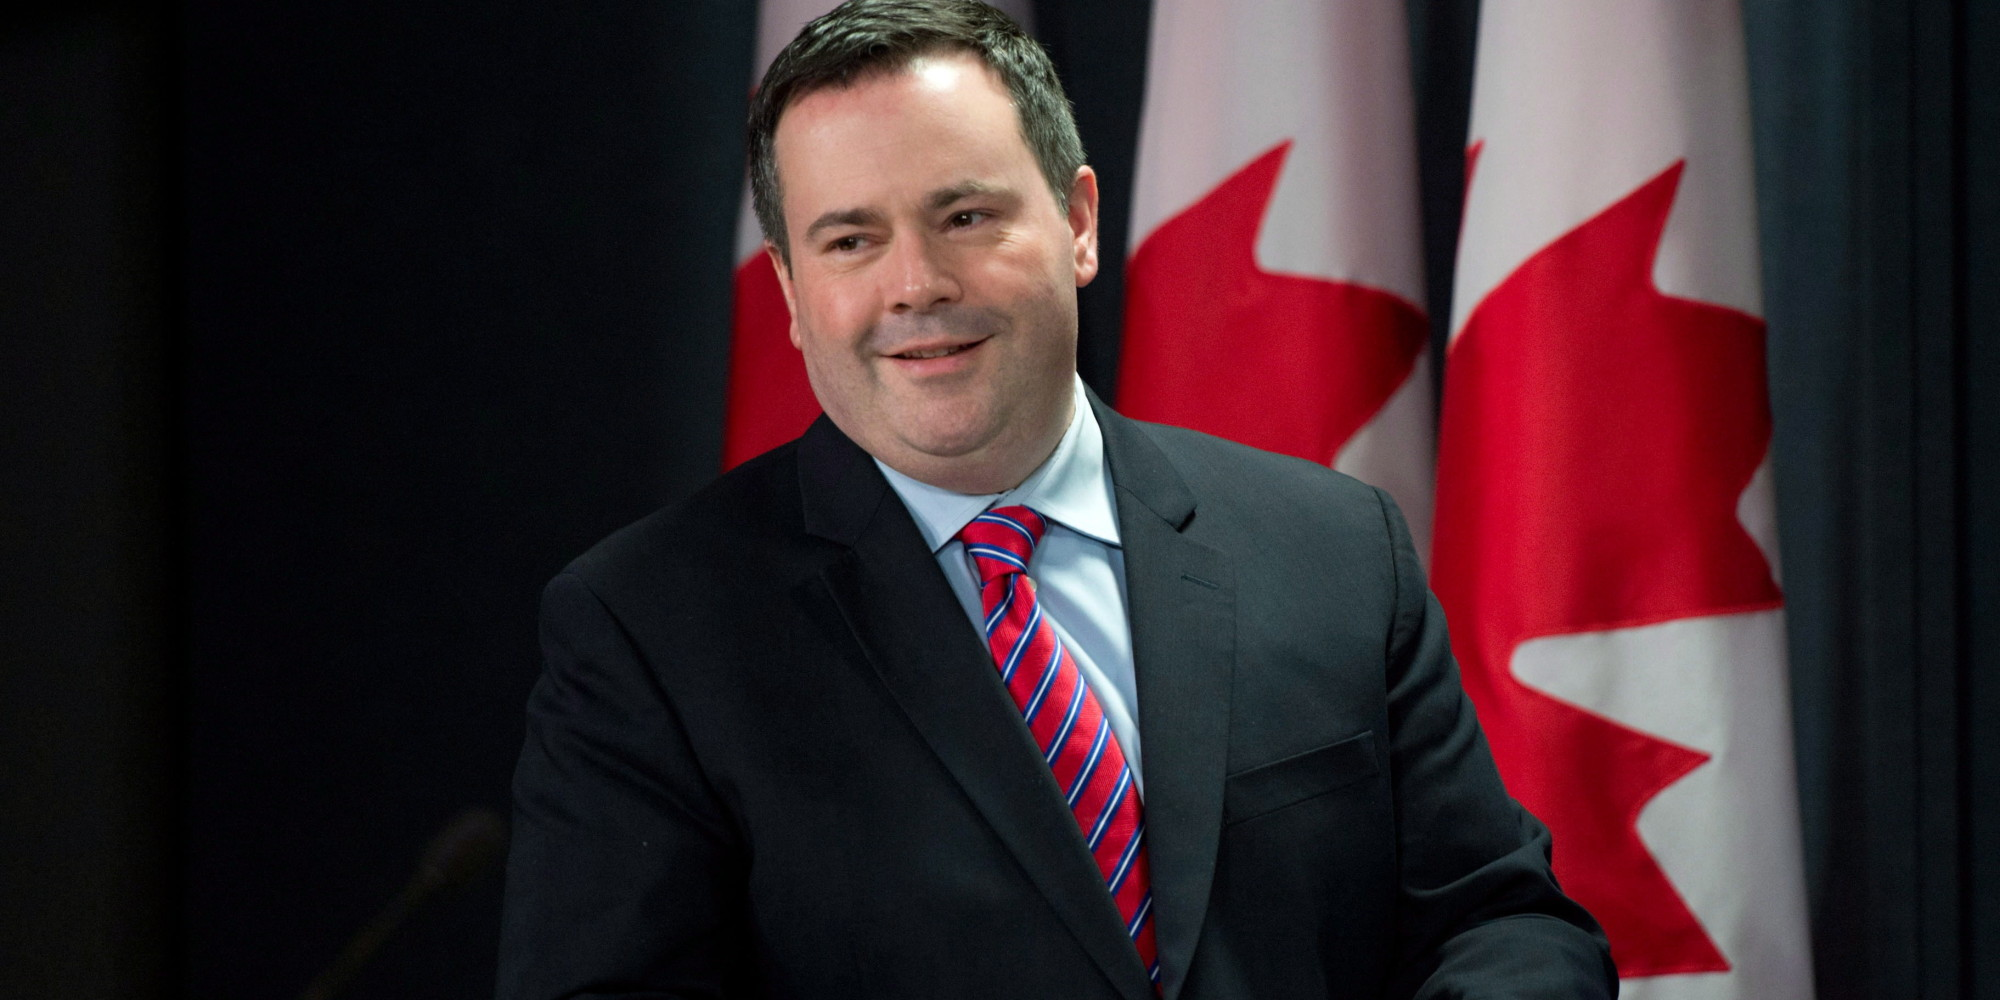 Kenney picked to lead Alberta PC's